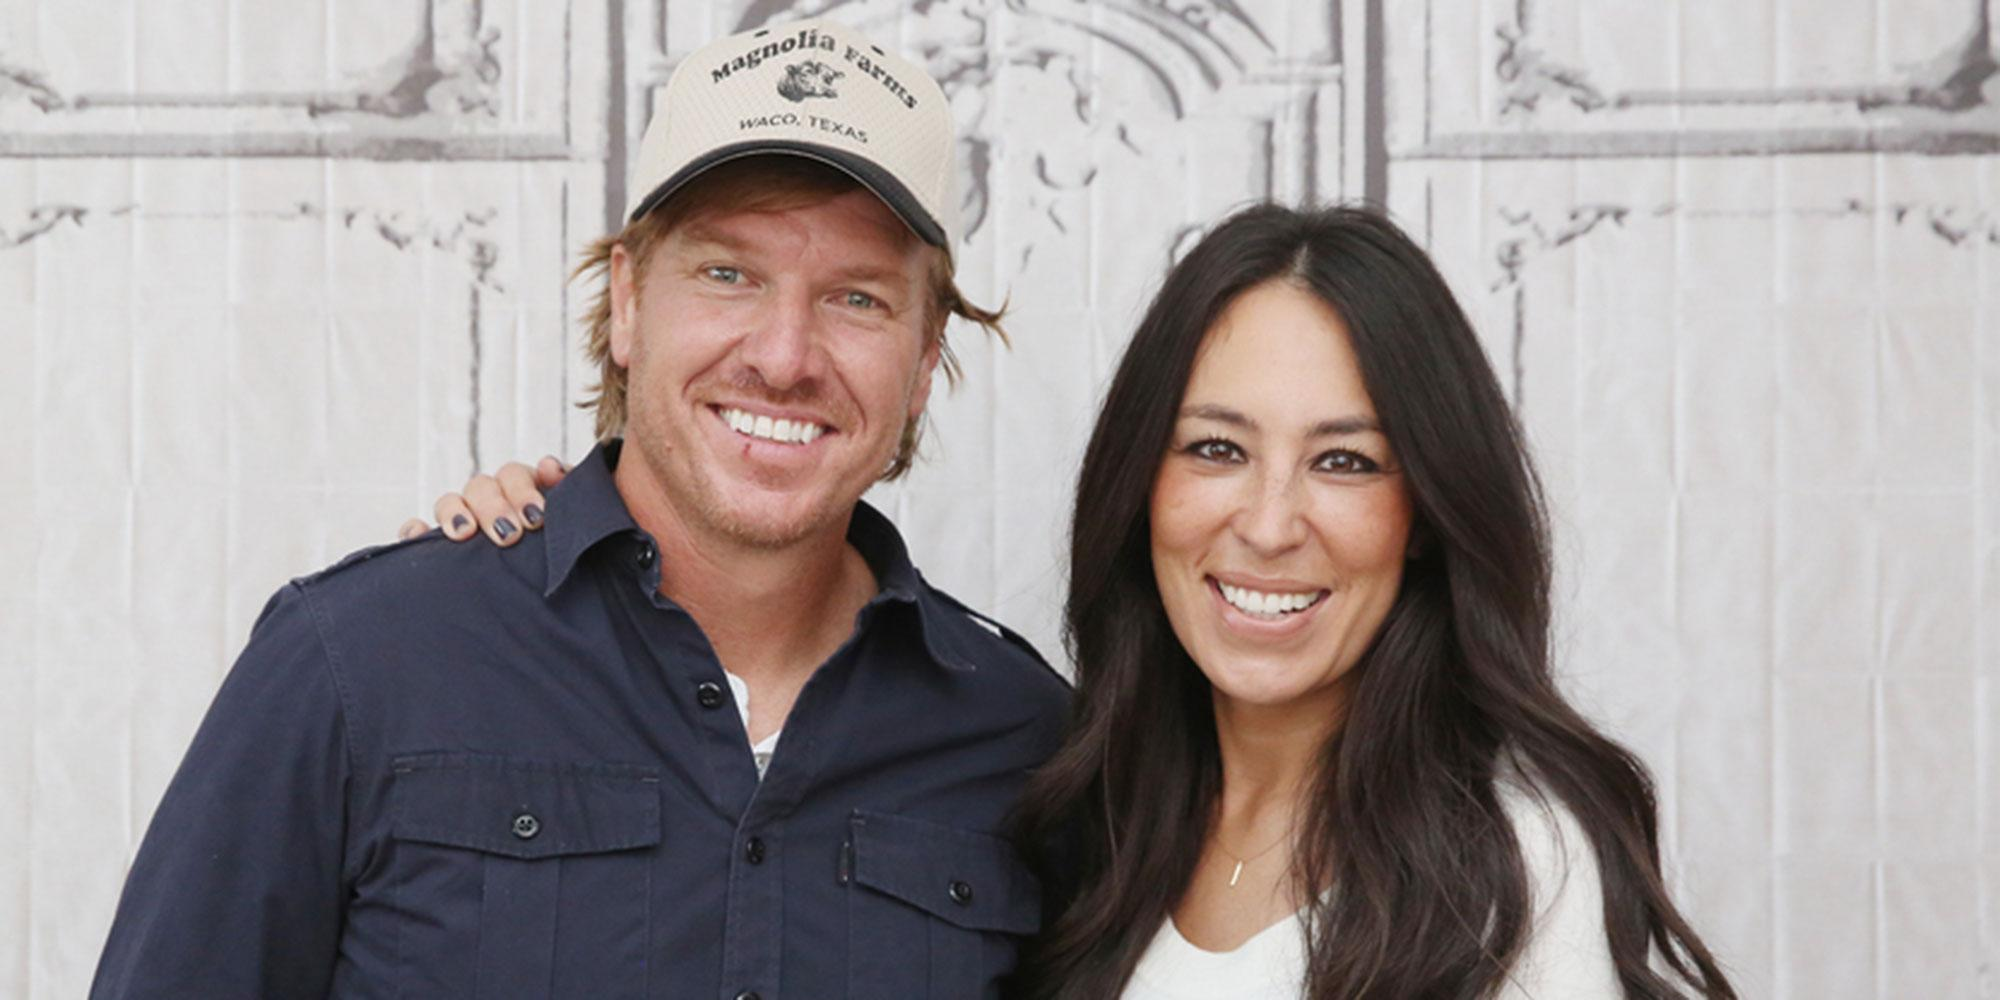 Chip and joanna gaines might leave texas for Is joanna gaines really leaving fixer upper